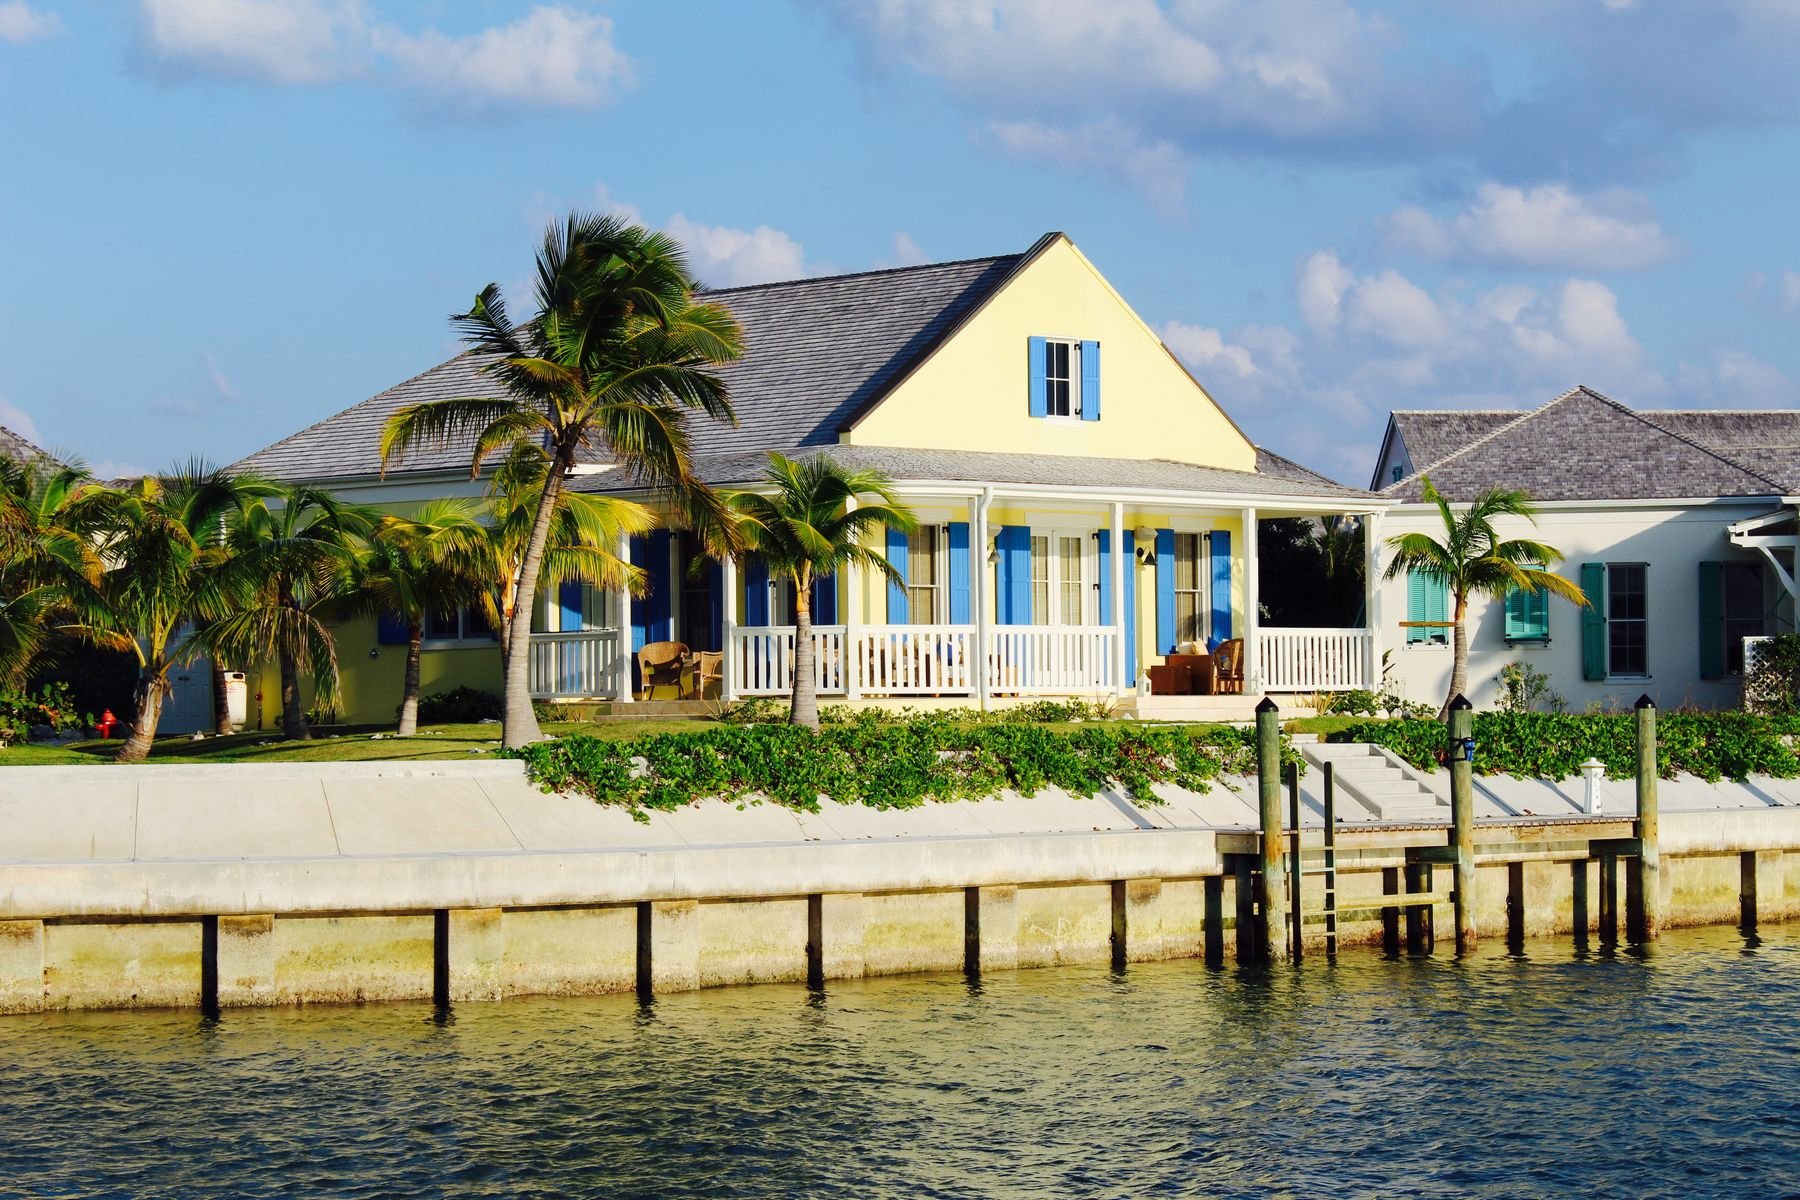 Single Family Home for Sale at Azure Way Cottage at Schooner Bay Schooner Bay, Abaco, Bahamas